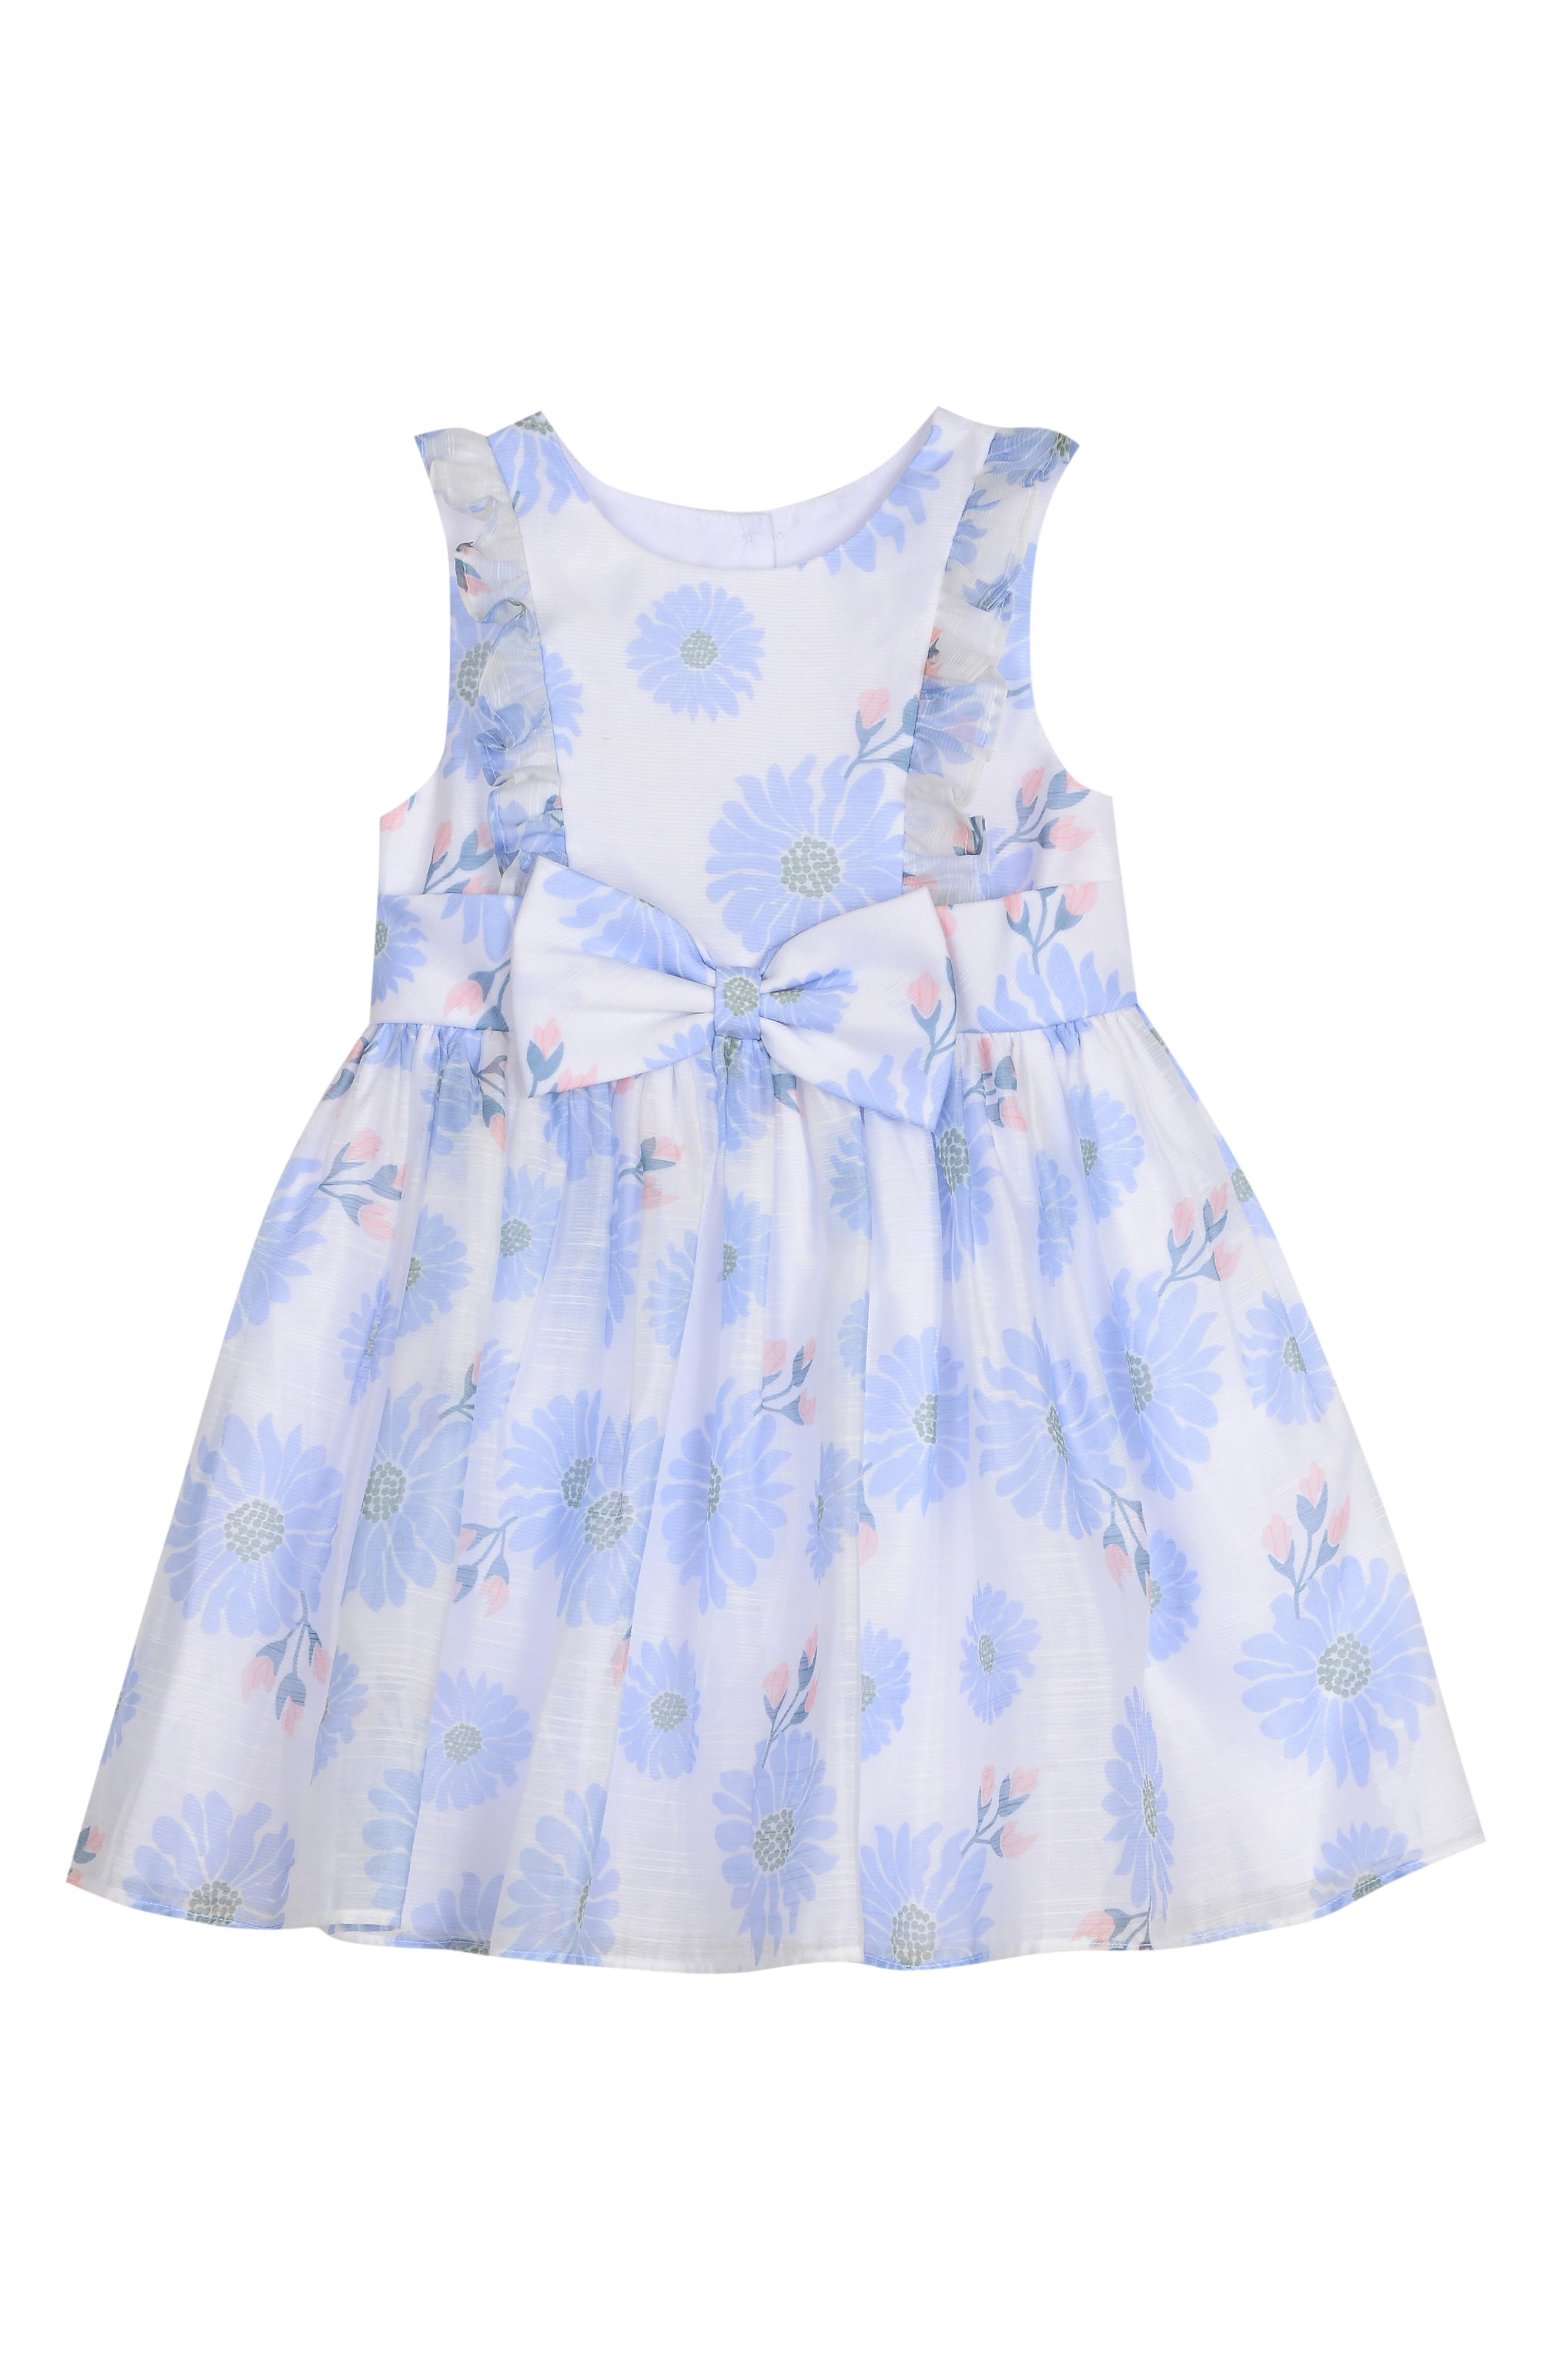 PIPPA & JULIE, Floral Bow Front Dress, Main thumbnail 1, color, WHITE/ BLUE